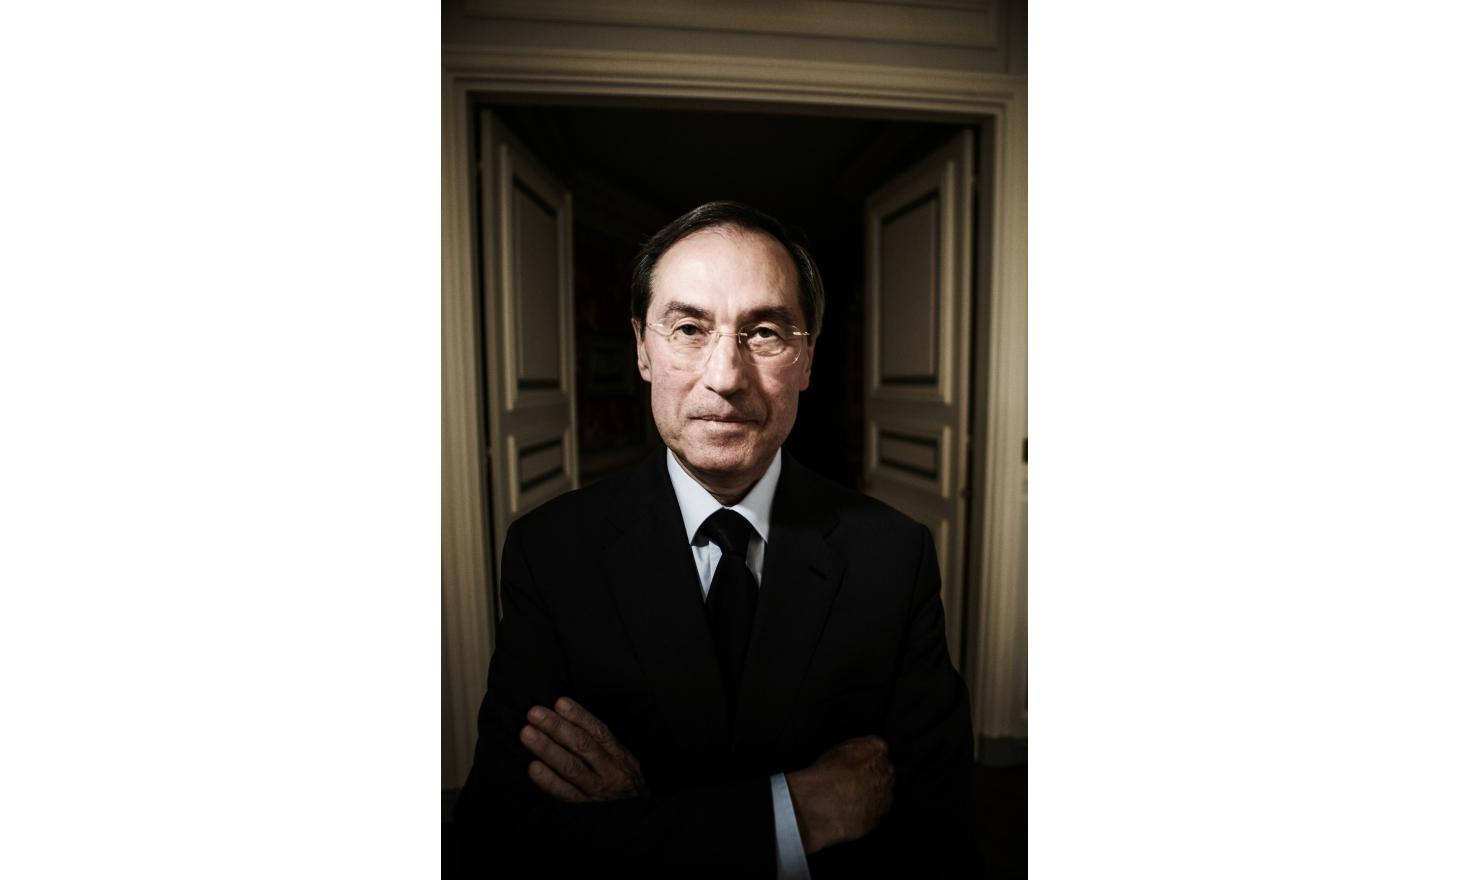 Claude Gueant, French minister of the interior under Nicolas Sarkozy's presidency. Portrait in the ministry in 2012